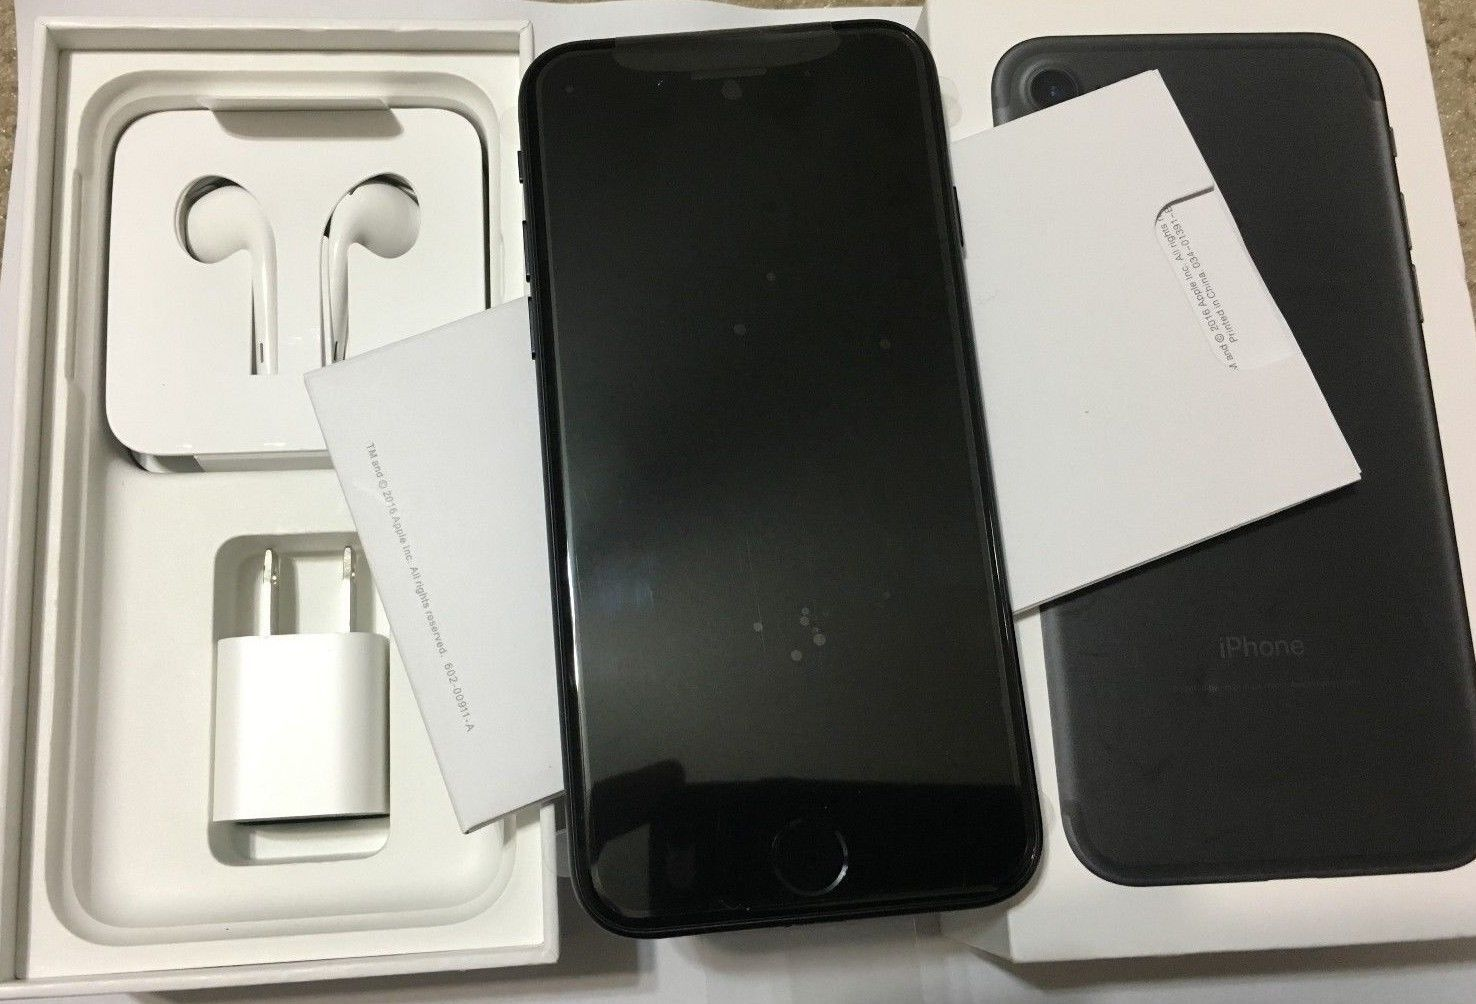 #New post #Apple iPhone 7 - 128GB - Black (T-Mobile) Smartphone  http://i.ebayimg.com/images/g/rPUAAOSwXYtY2z1U/s-l1600.jpg      Item specifics   Condition: New other (see details) 	     		: 	     			 						 							 						 															 					   						  	A new, unused item with absolutely no signs of wear. The item may be missing the original packaging, or in the original packaging but not sealed. The item may be a... https://www.shopnet.one/apple-iphone-7-128gb-black-t-mobi